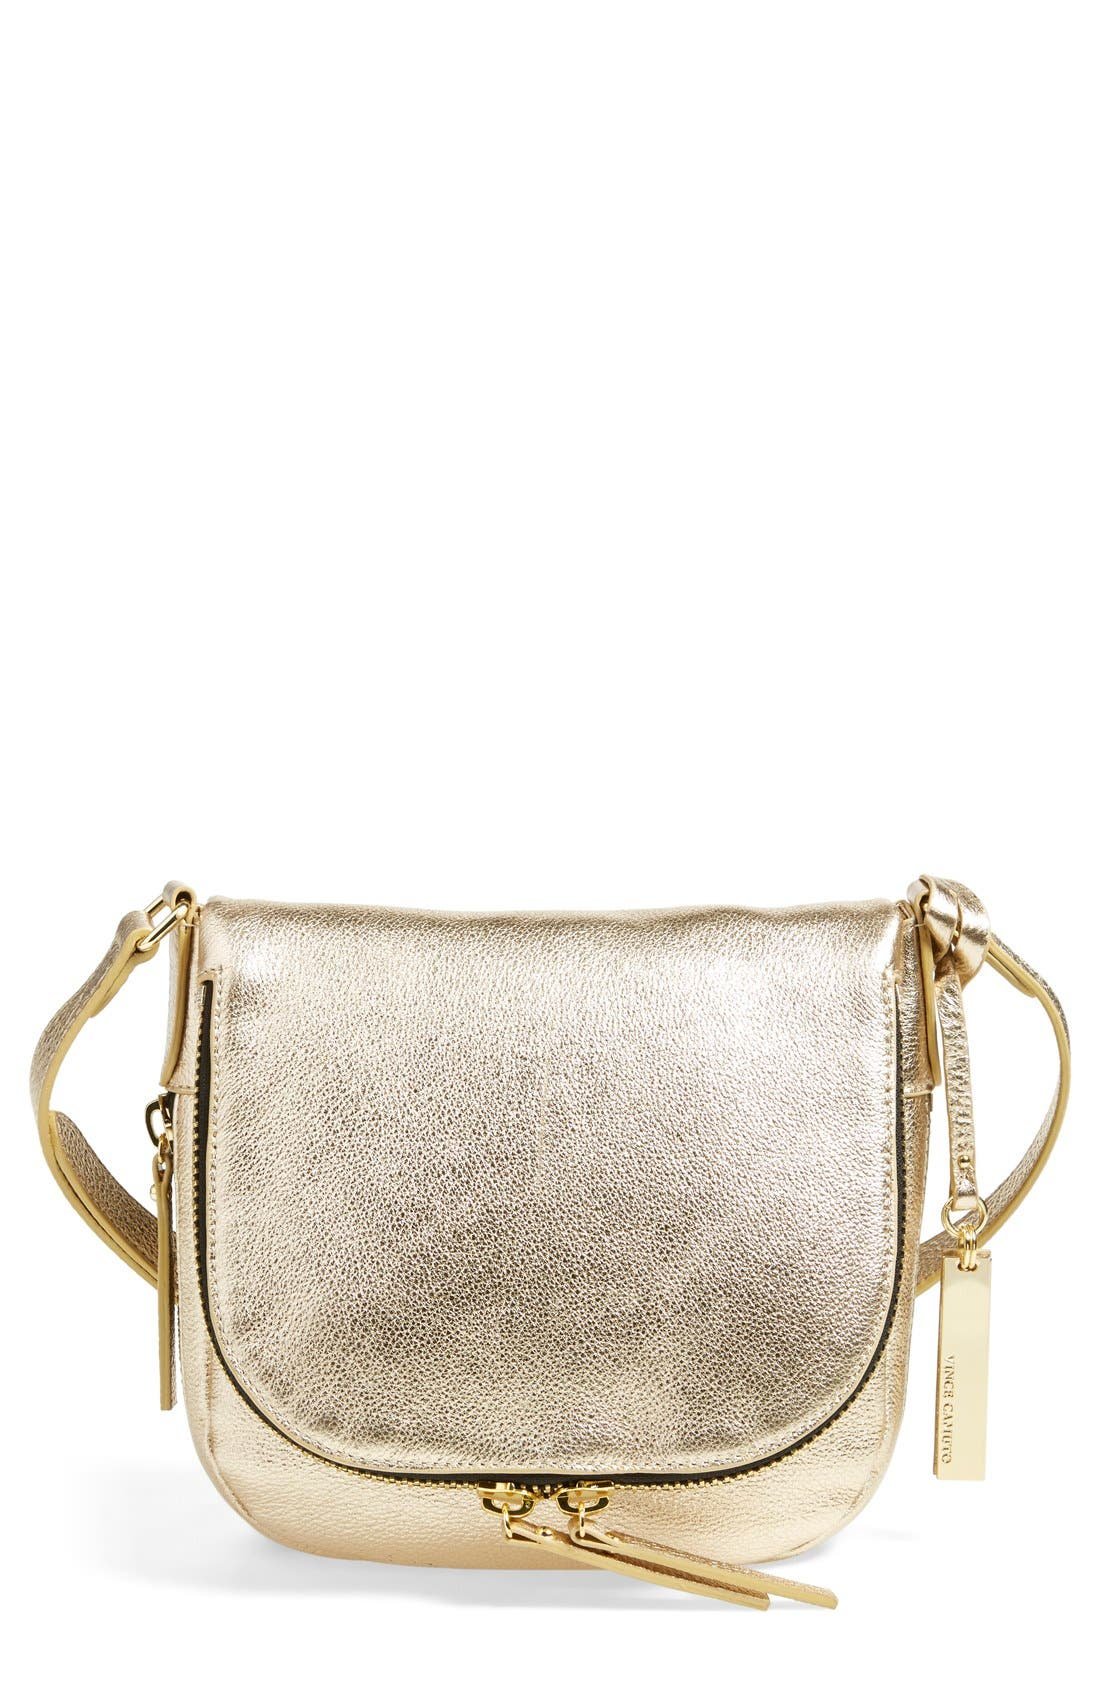 Main Image - Vince Camuto 'Baily' Leather Crossbody Bag